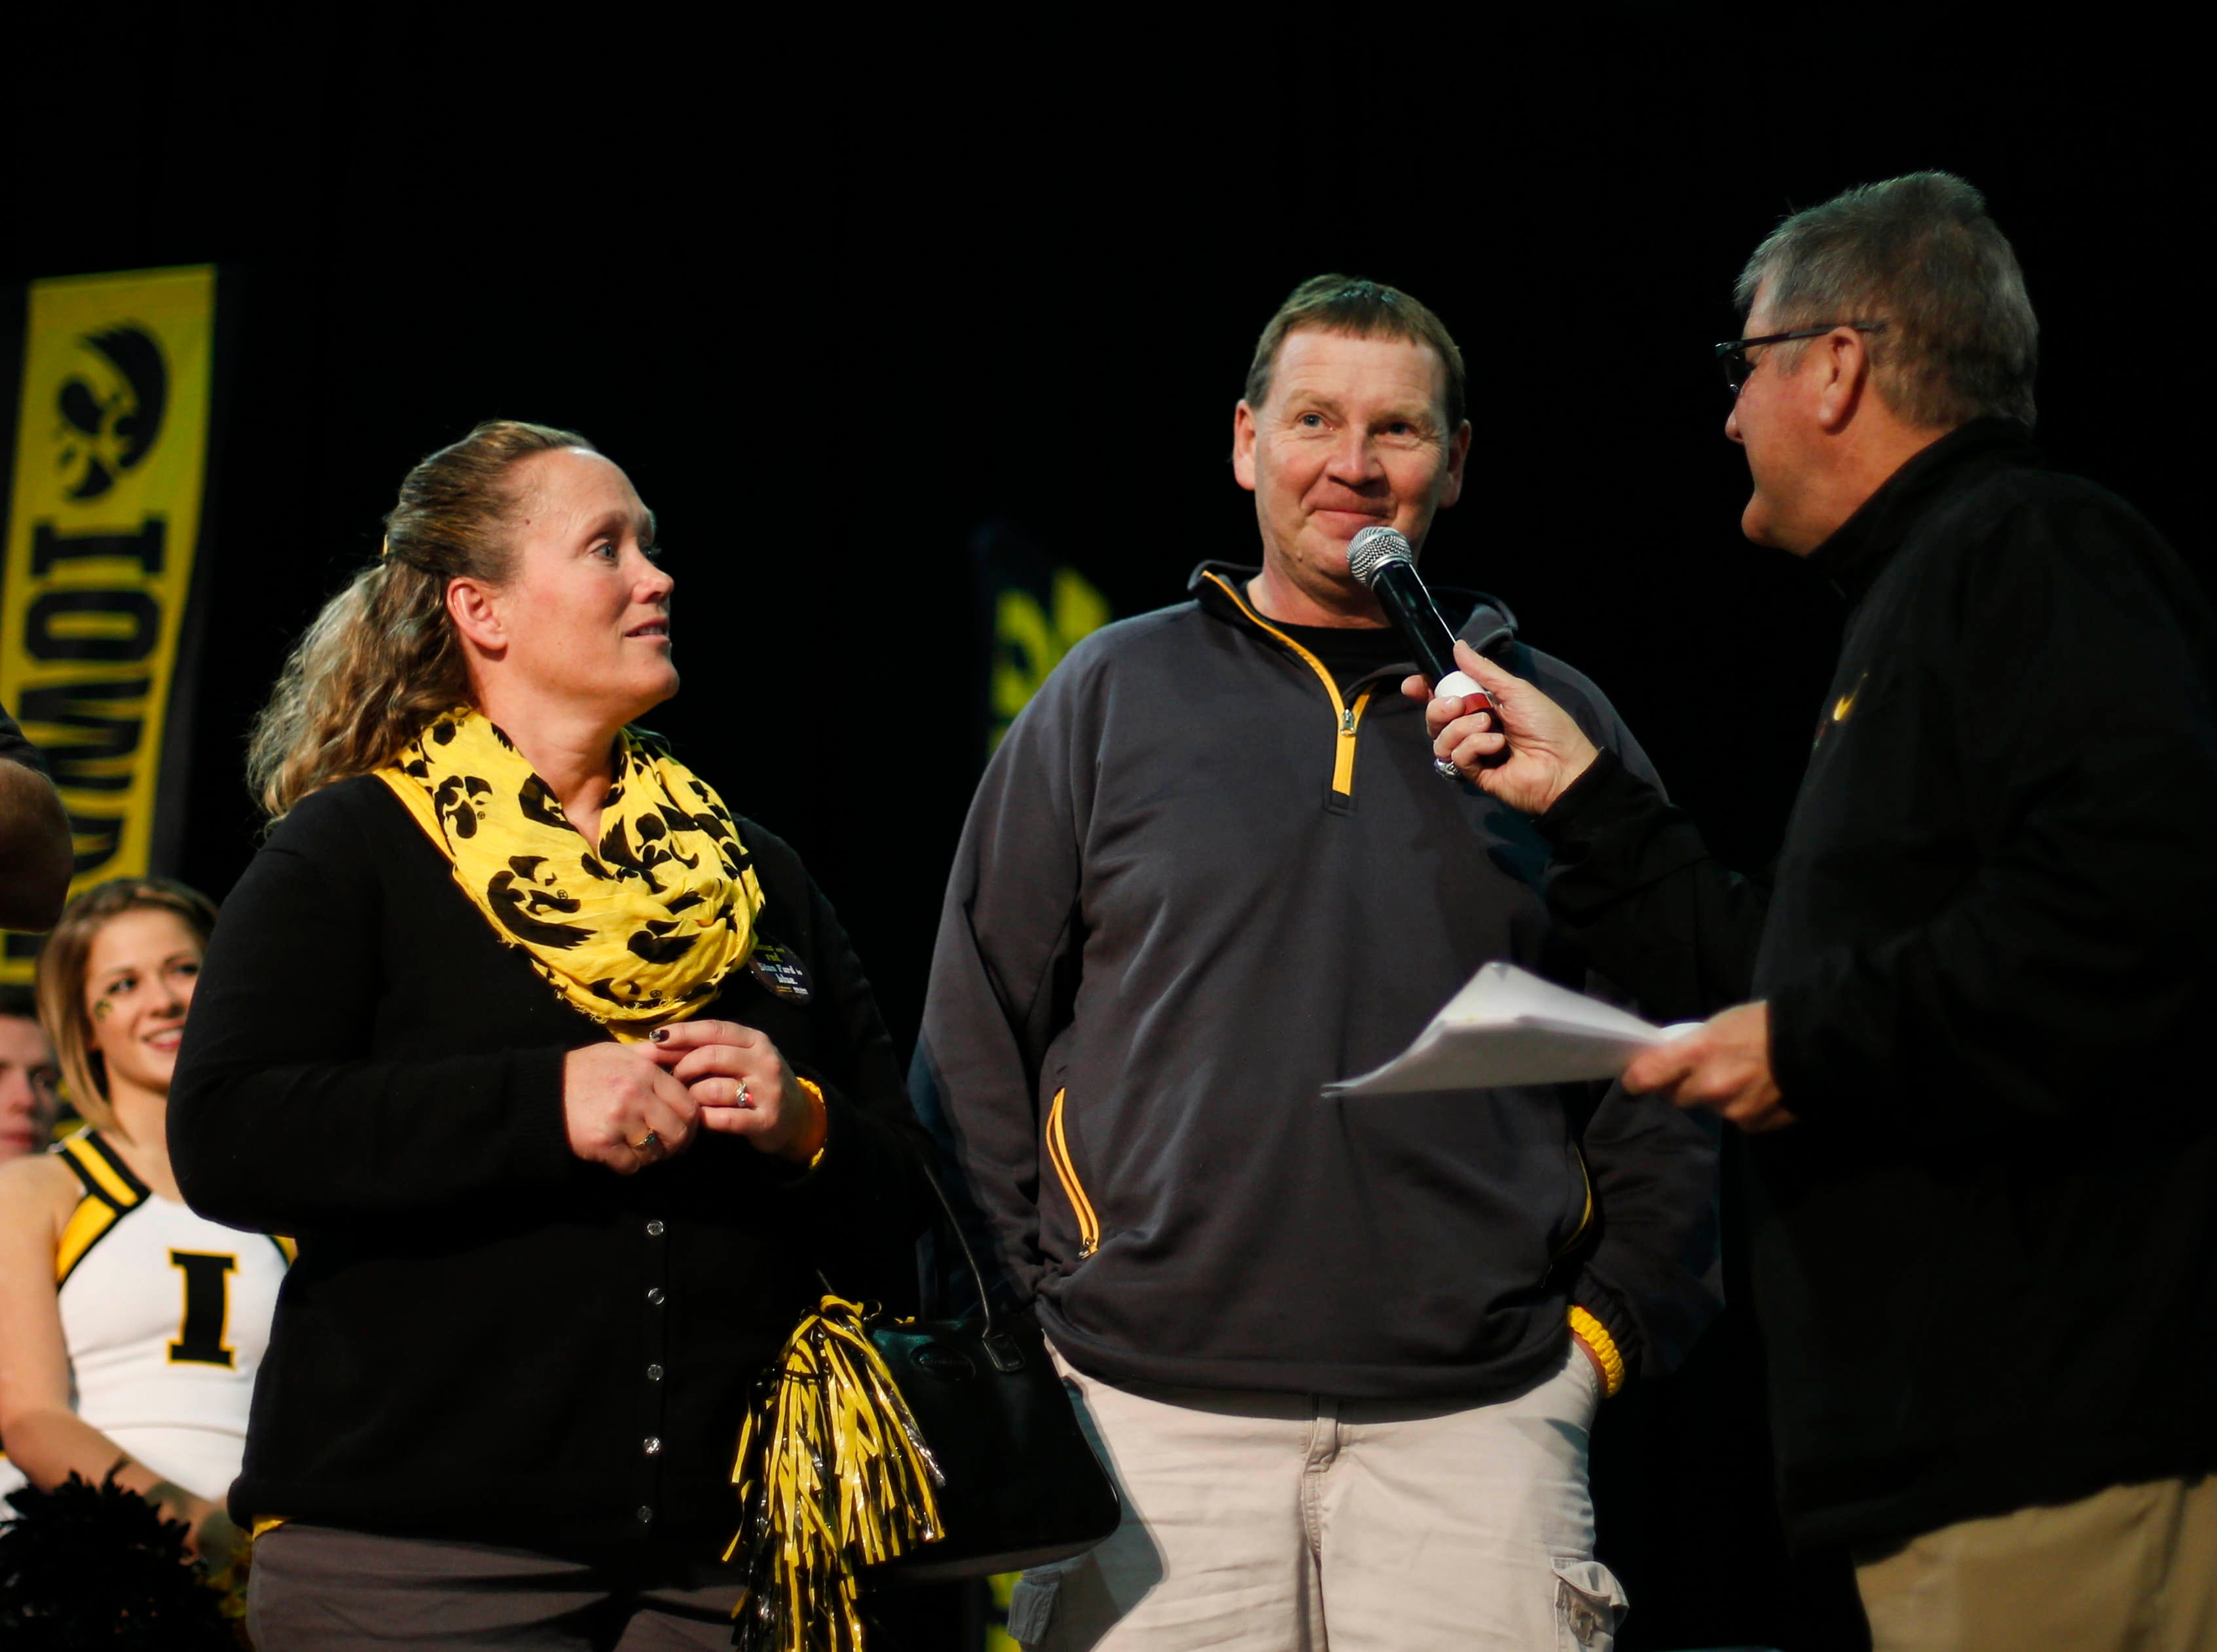 Iowa Hawkeye radio broadcaster Gary Dolphin speaks with the parents of Hawkeyes defensive end Parker Hesse during the Hawkeye Huddle on Wednesday, Dec. 30, 2015, at the Los Angeles Convention Center.